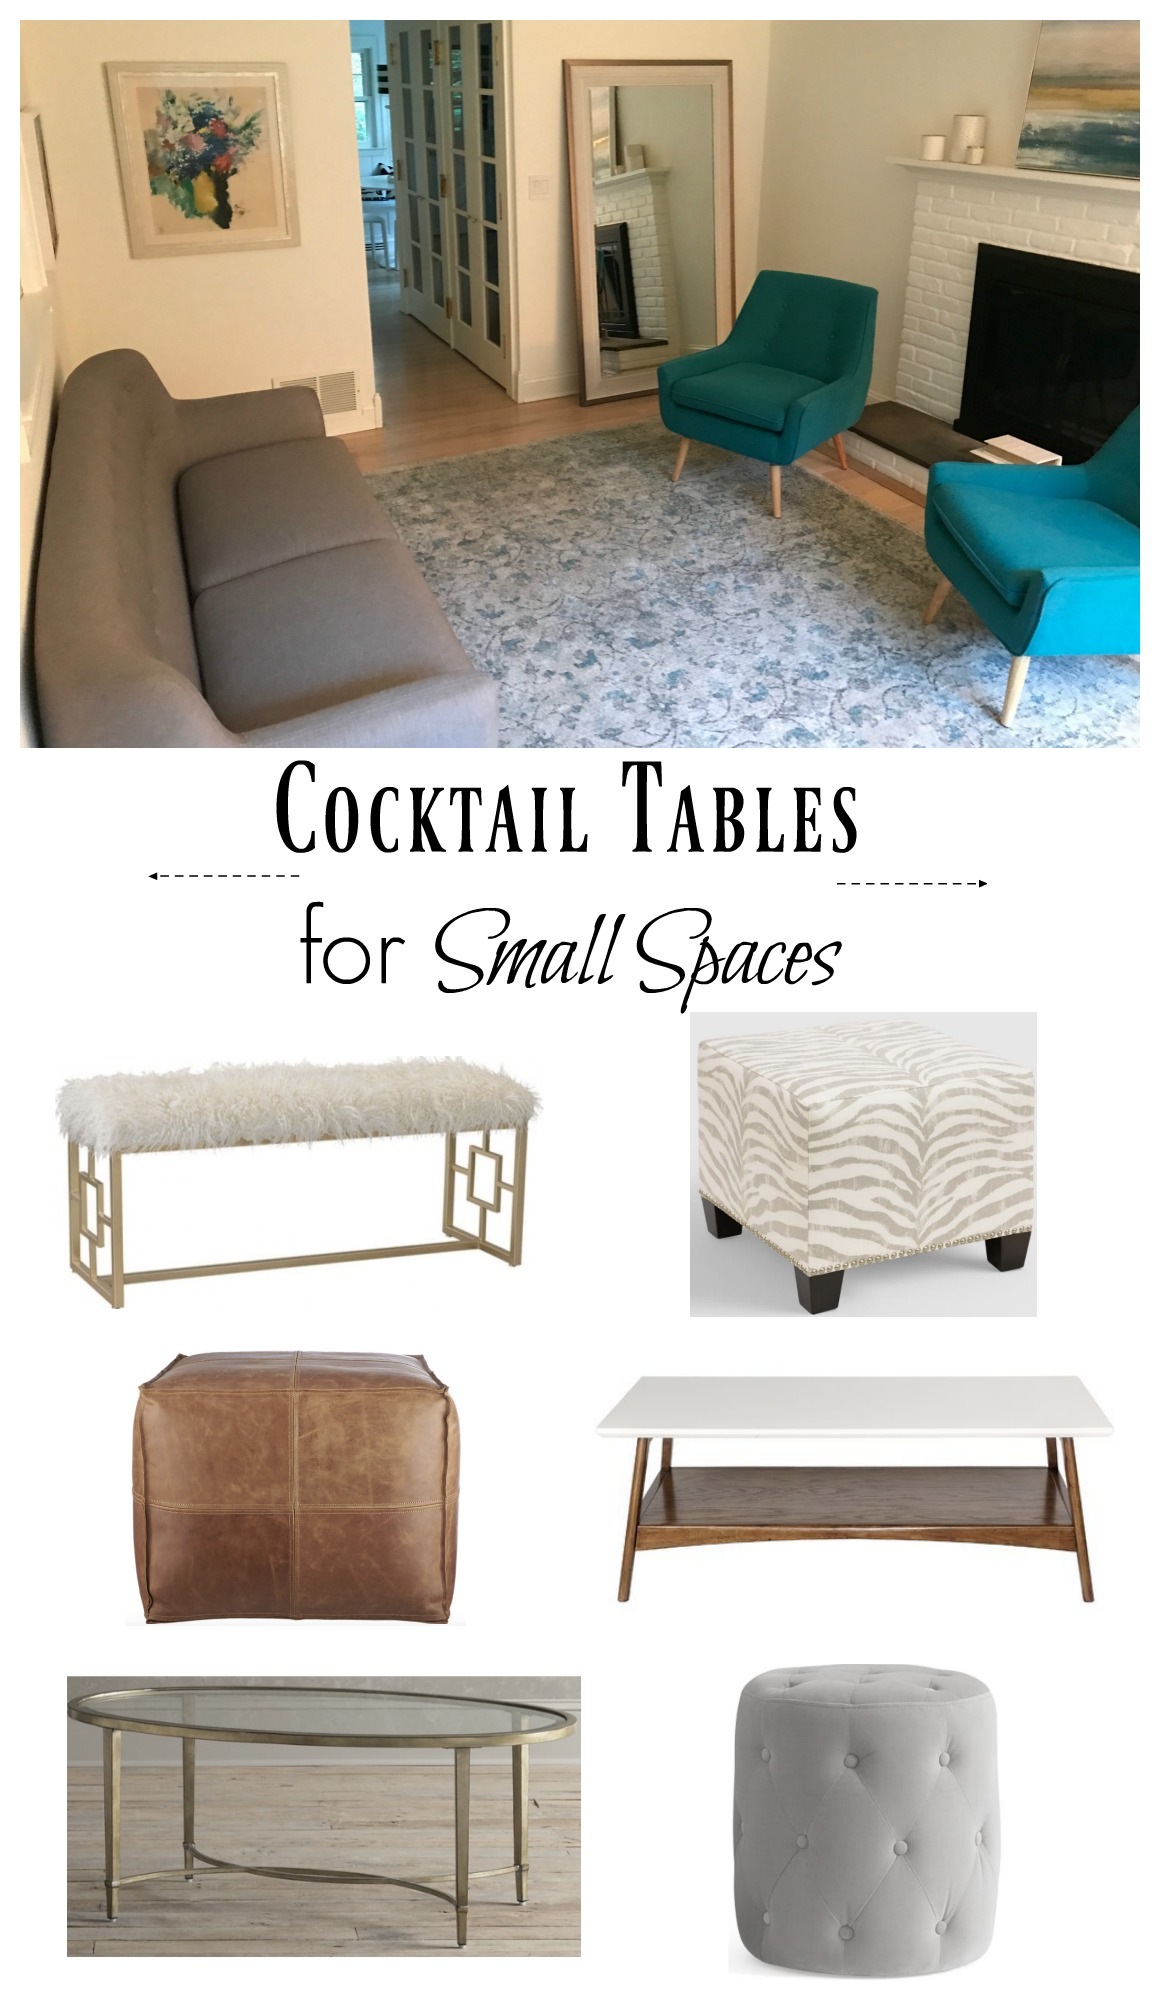 Cocktail Table Ideas for Small Spaces